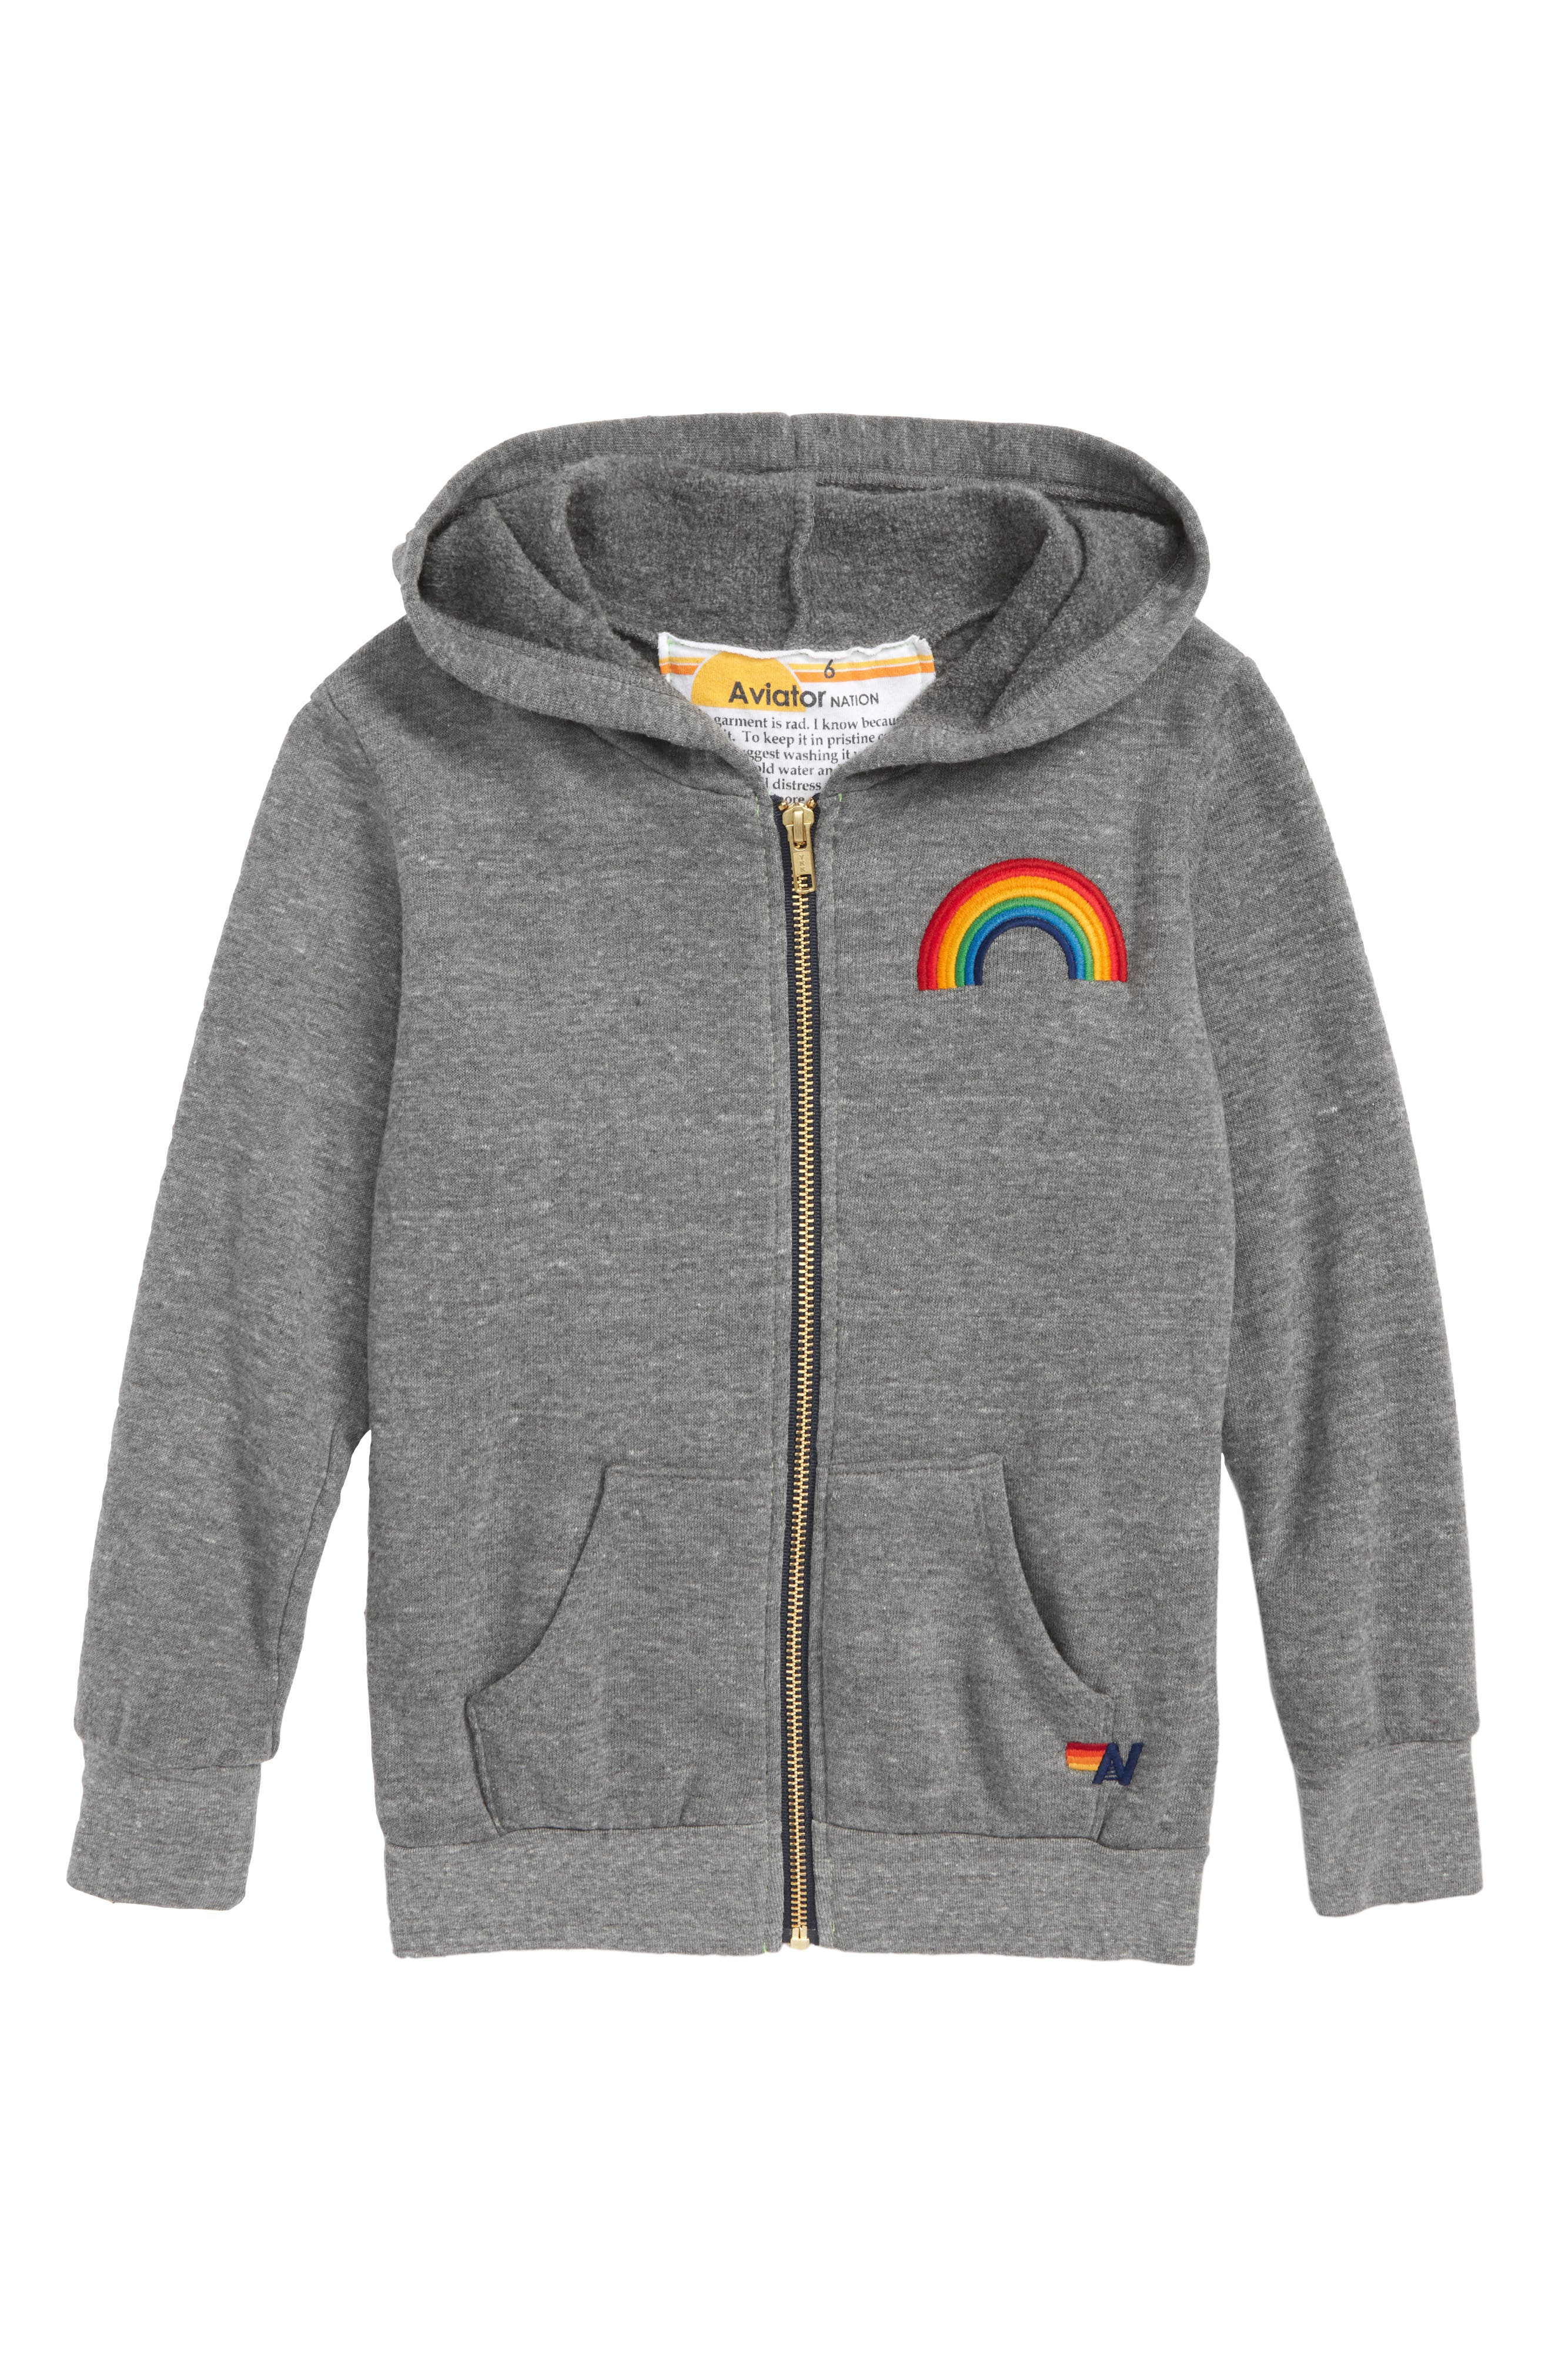 Rainbow Embroidery Zip Hoodie,                             Main thumbnail 1, color,                             020